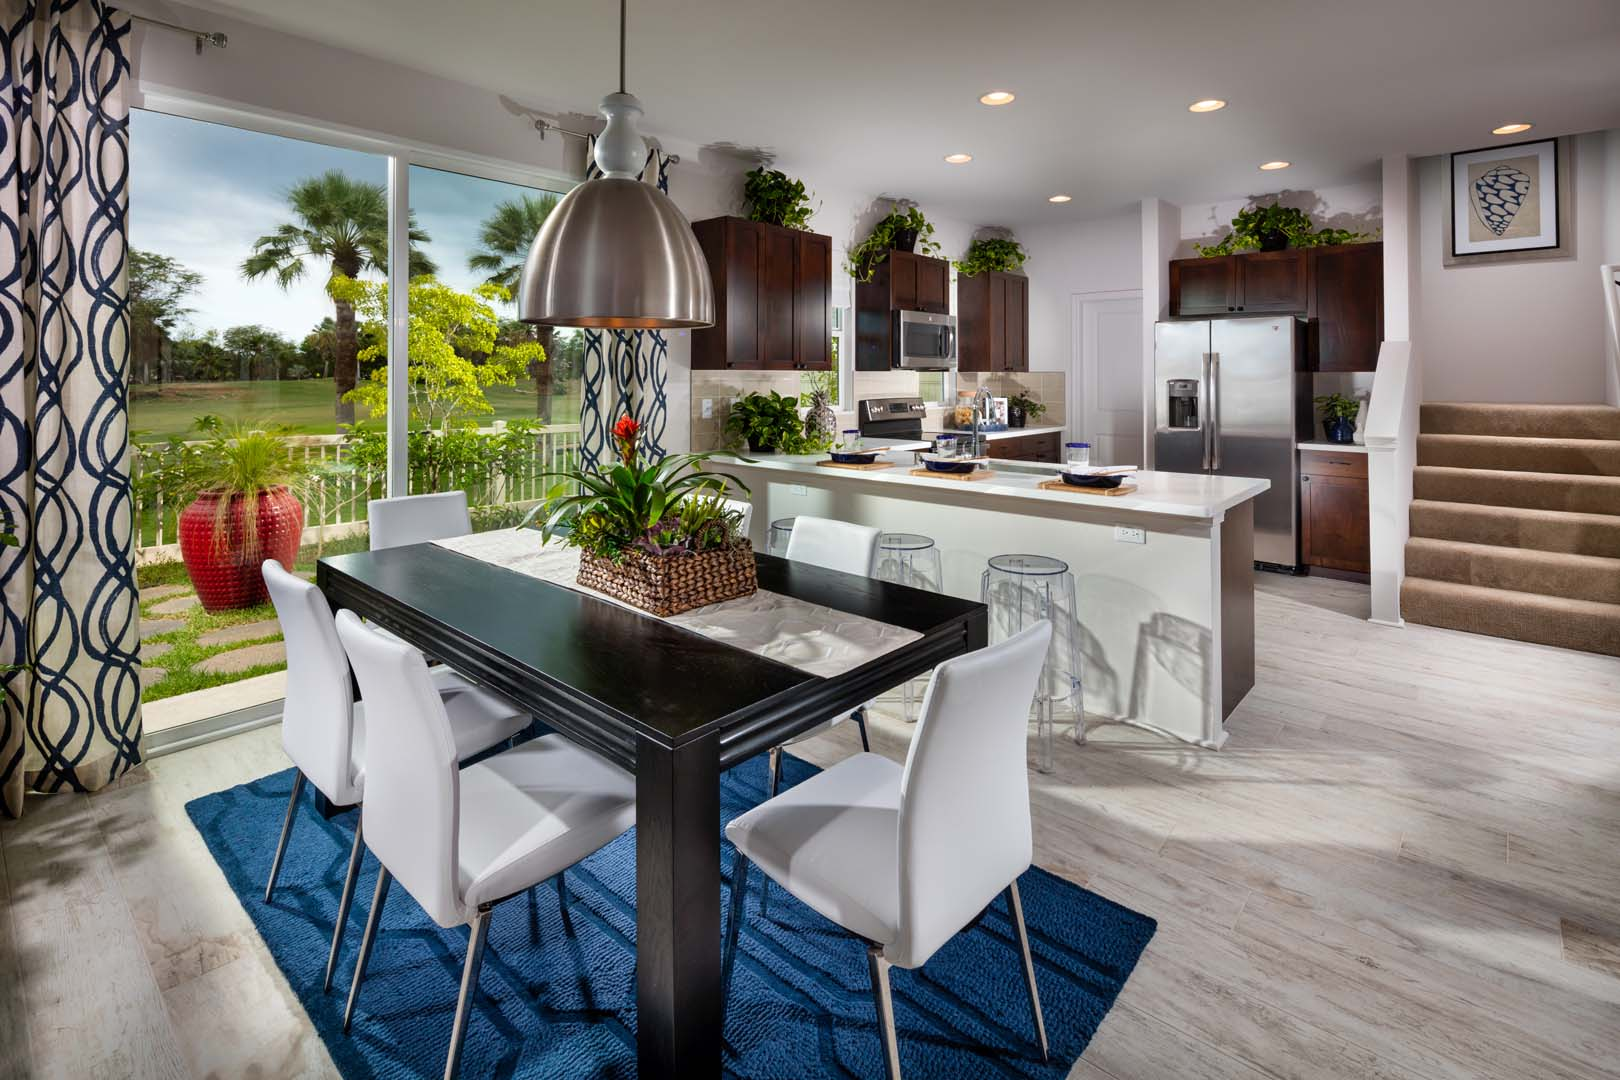 Coral Ridge Plan 3 - Kitchen